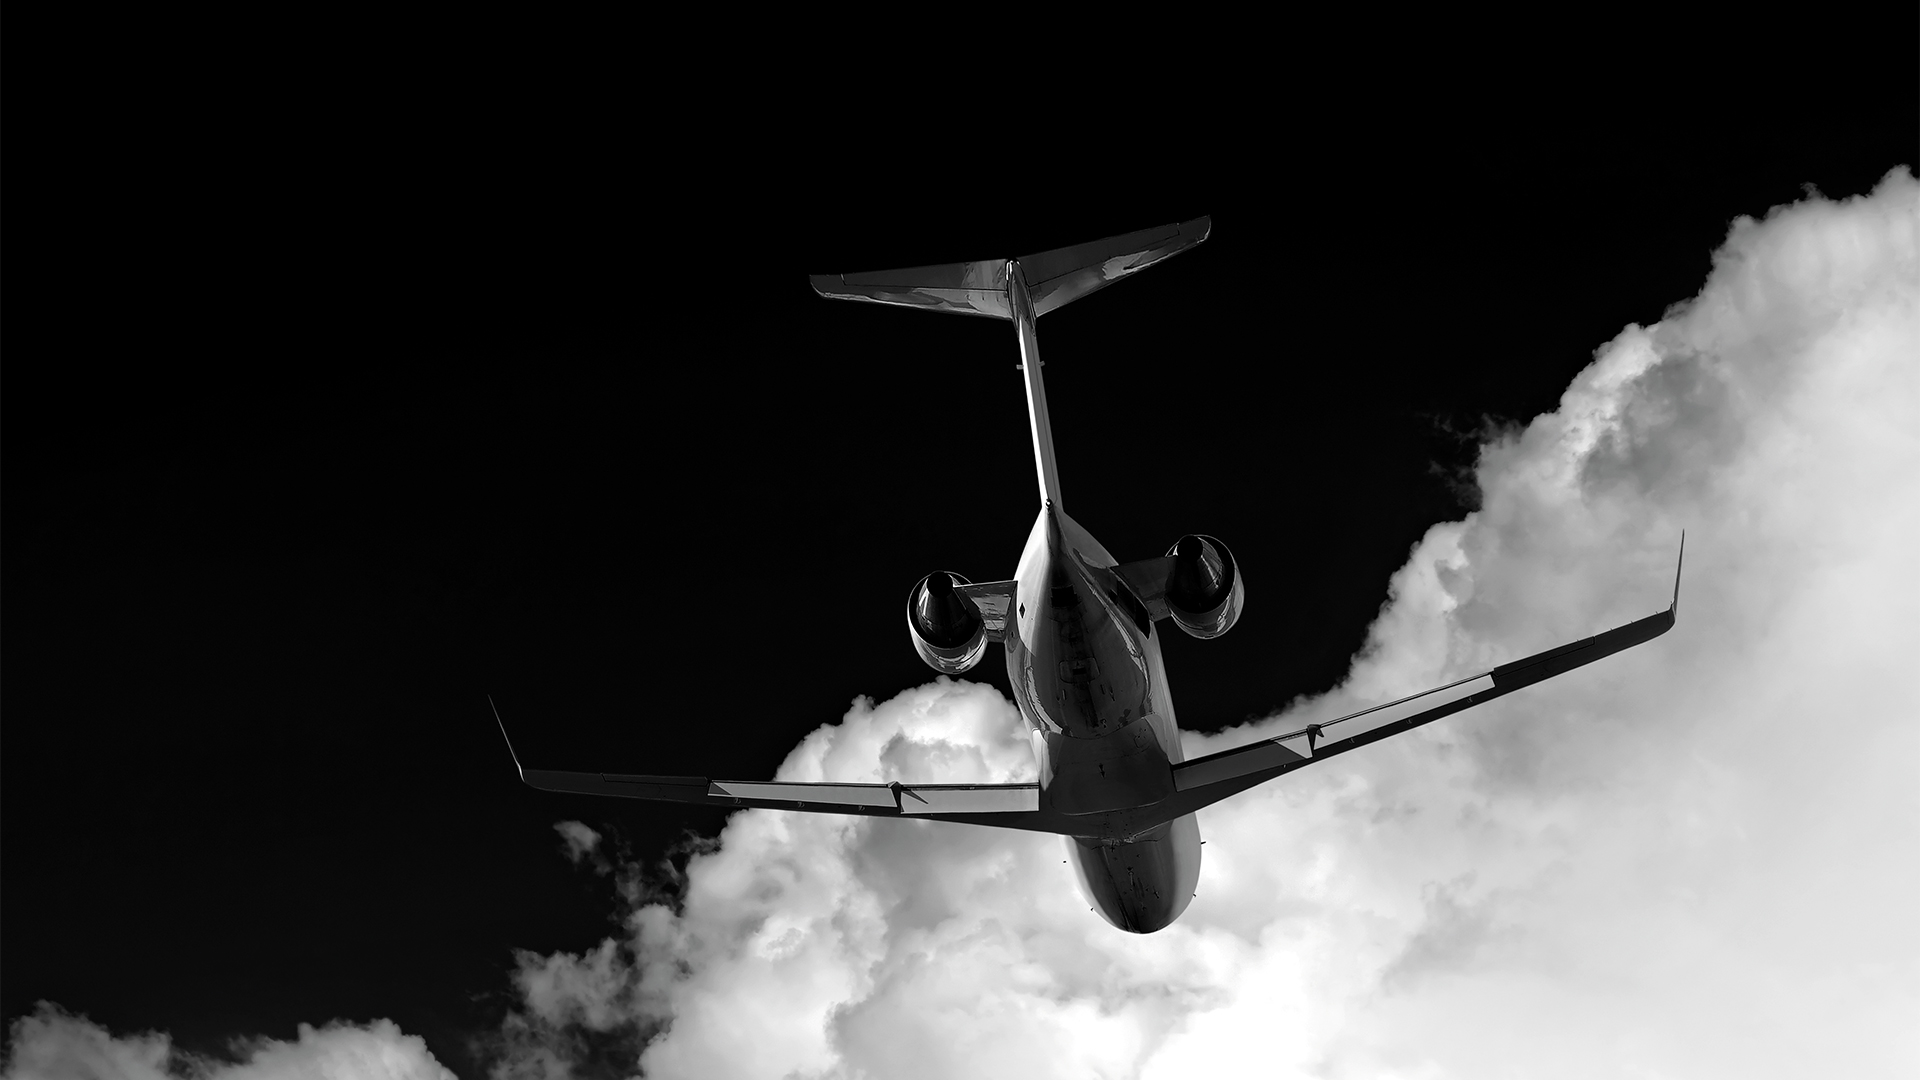 Business jet in flight